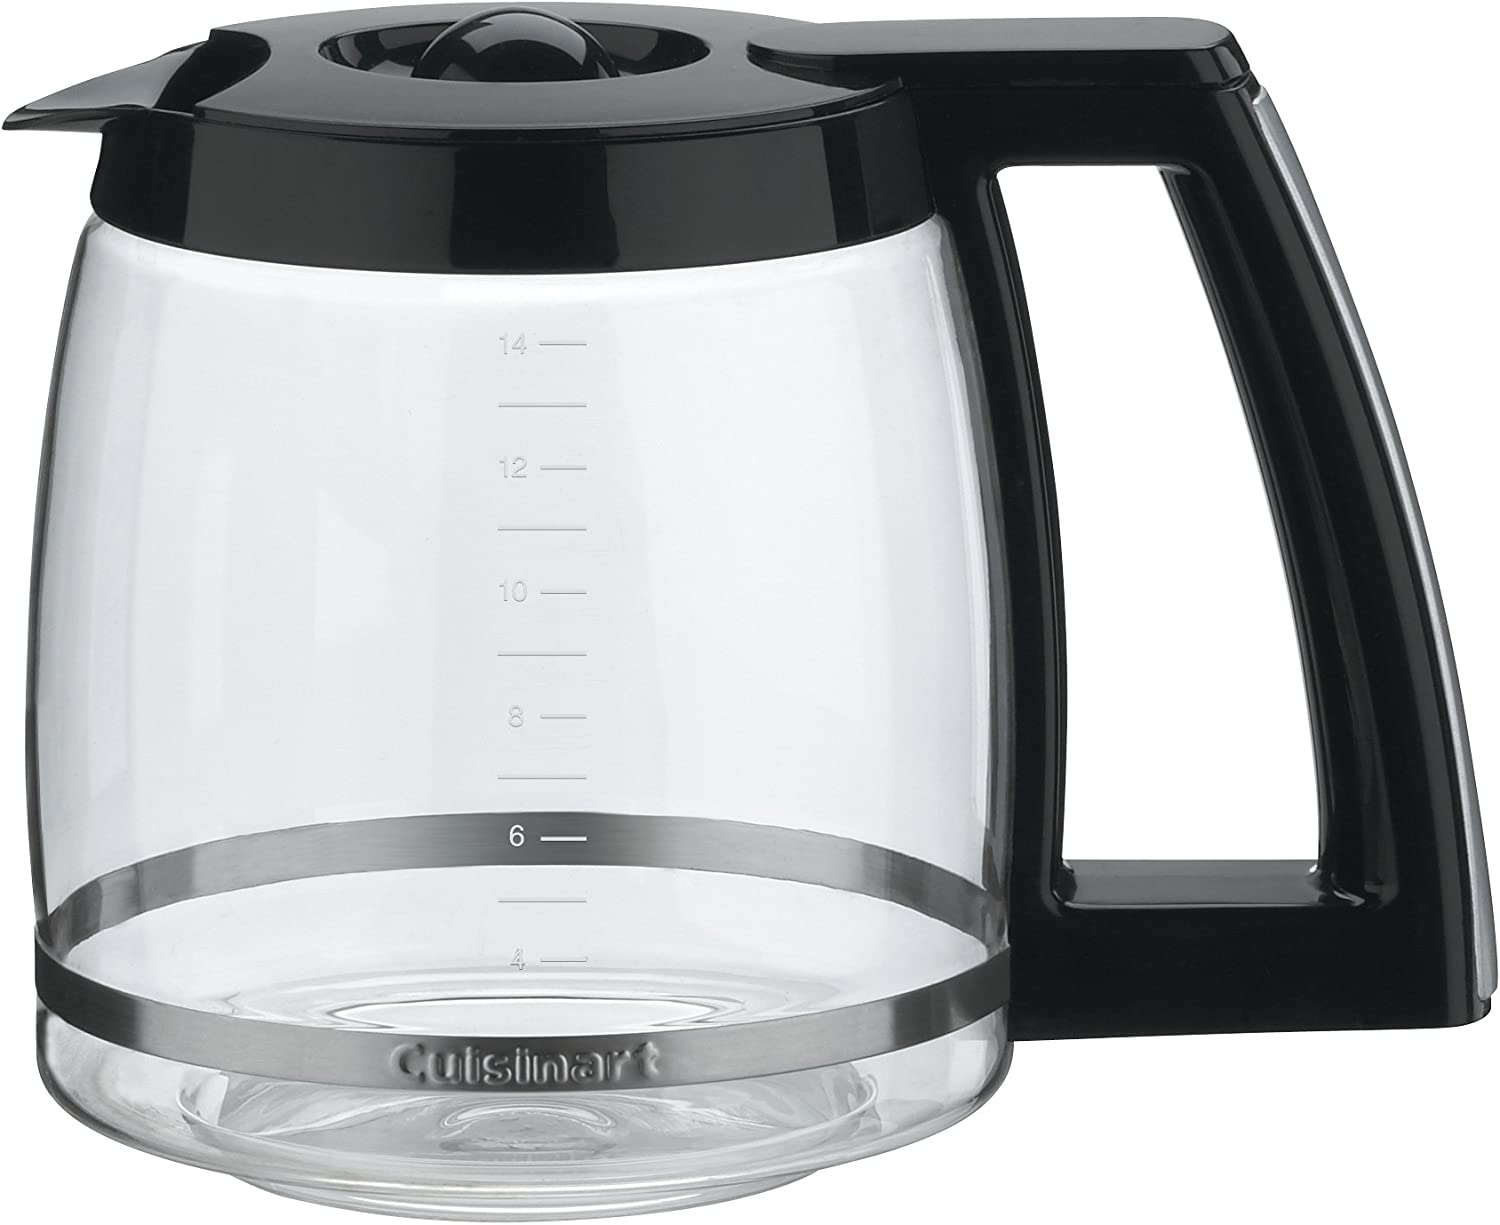 Cuisinart DCC-2200RC 14-Cup Replacement Glass Carafe, Black 71LlBRhsBAL